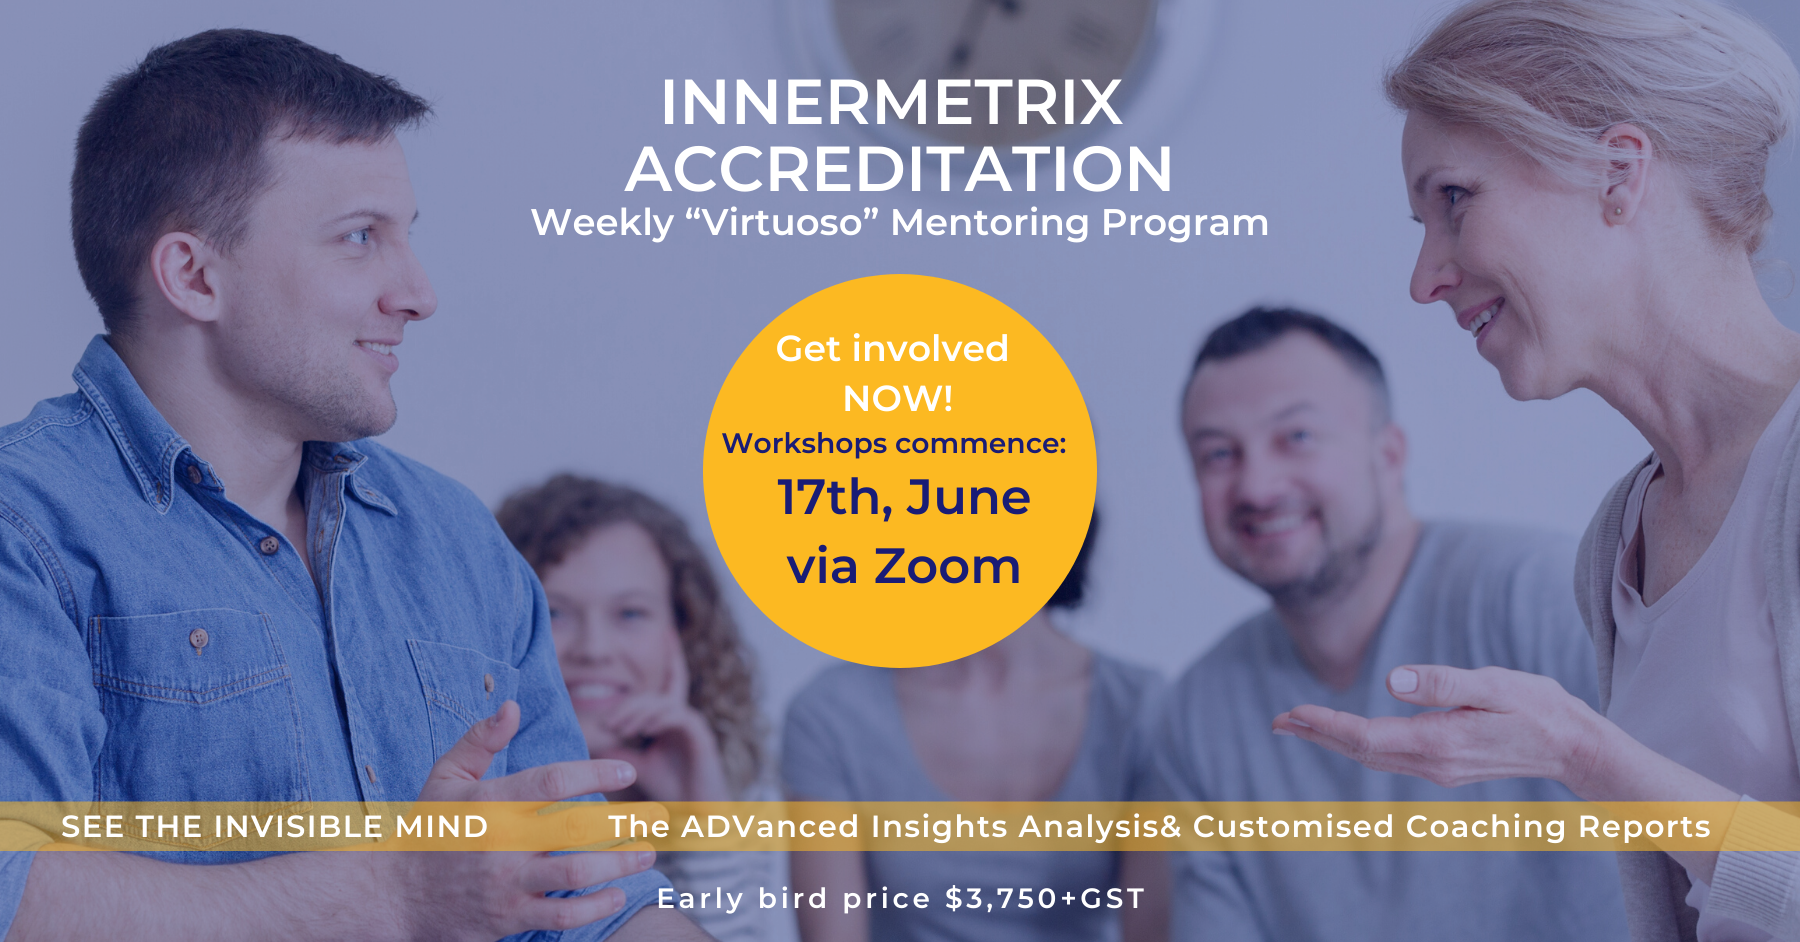 "Innermetrix Accreditation Weekly ""Virtuoso"" Mentoring Program 17th of June 2020"